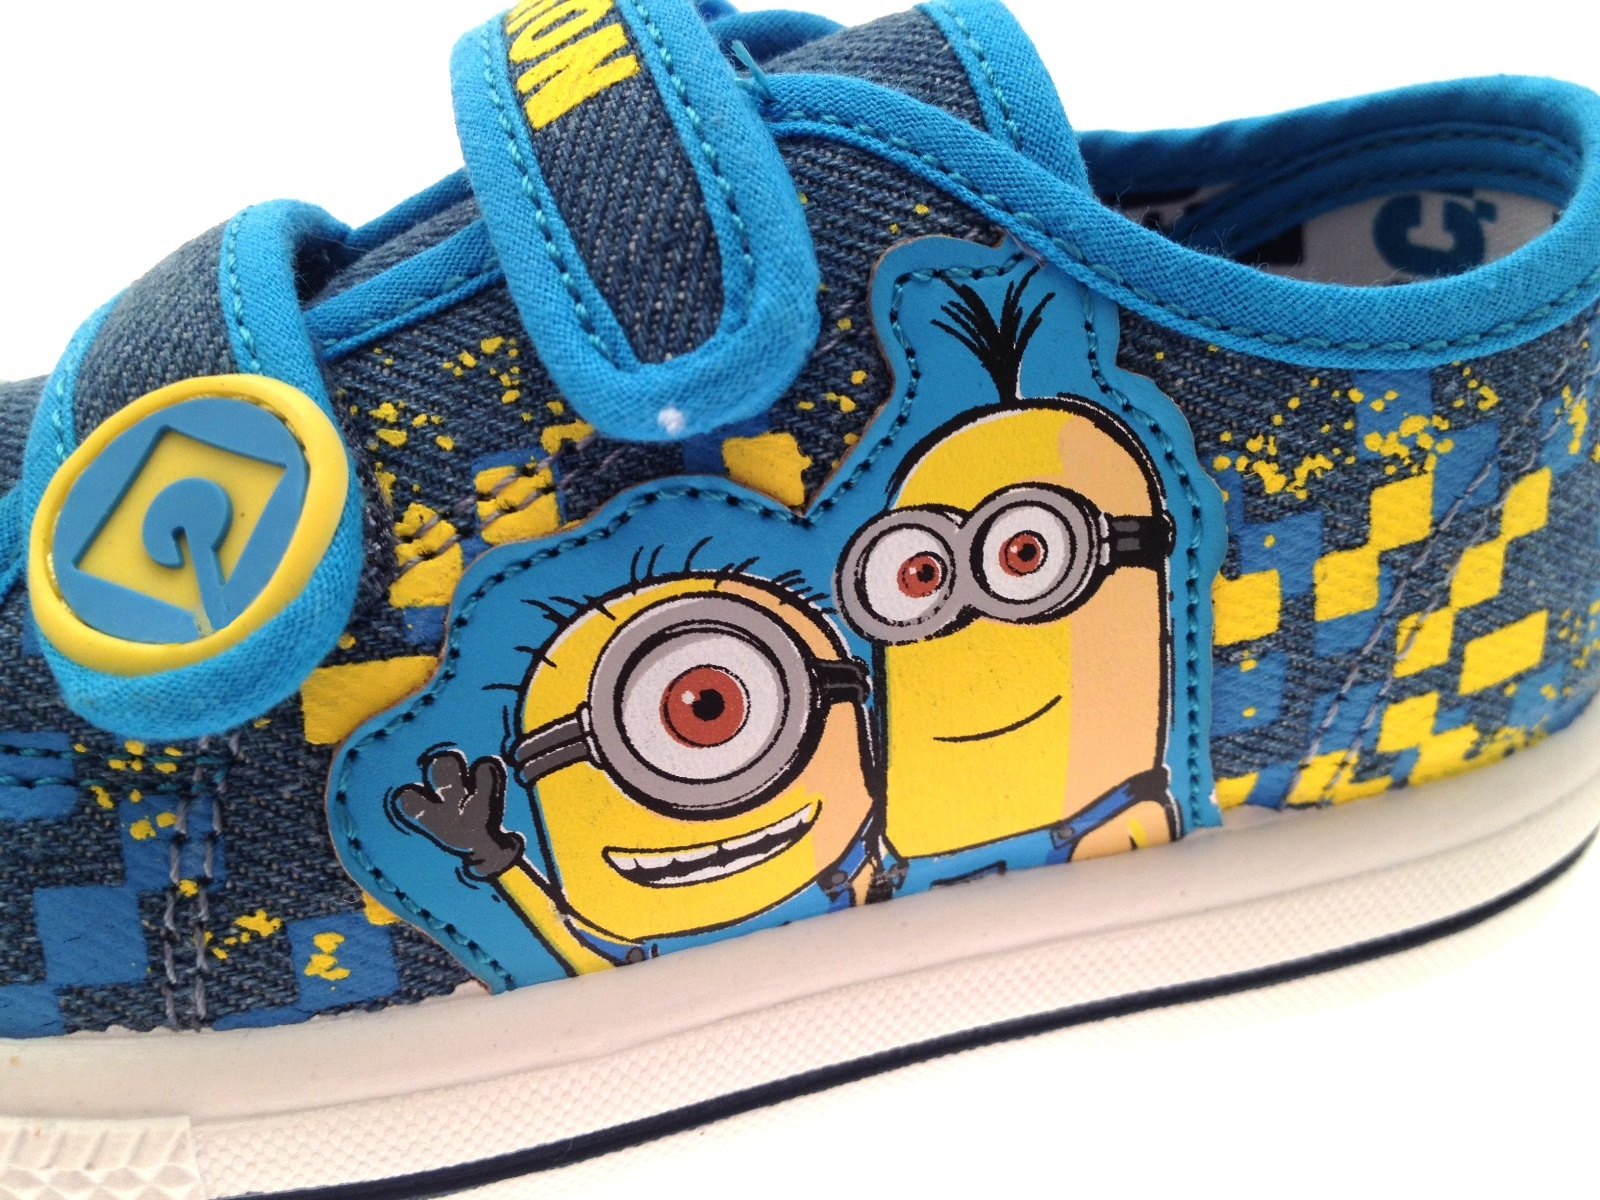 Boys Minions Yellow Blue Plimsolls Pumps Skate Trainers Kids Canvas